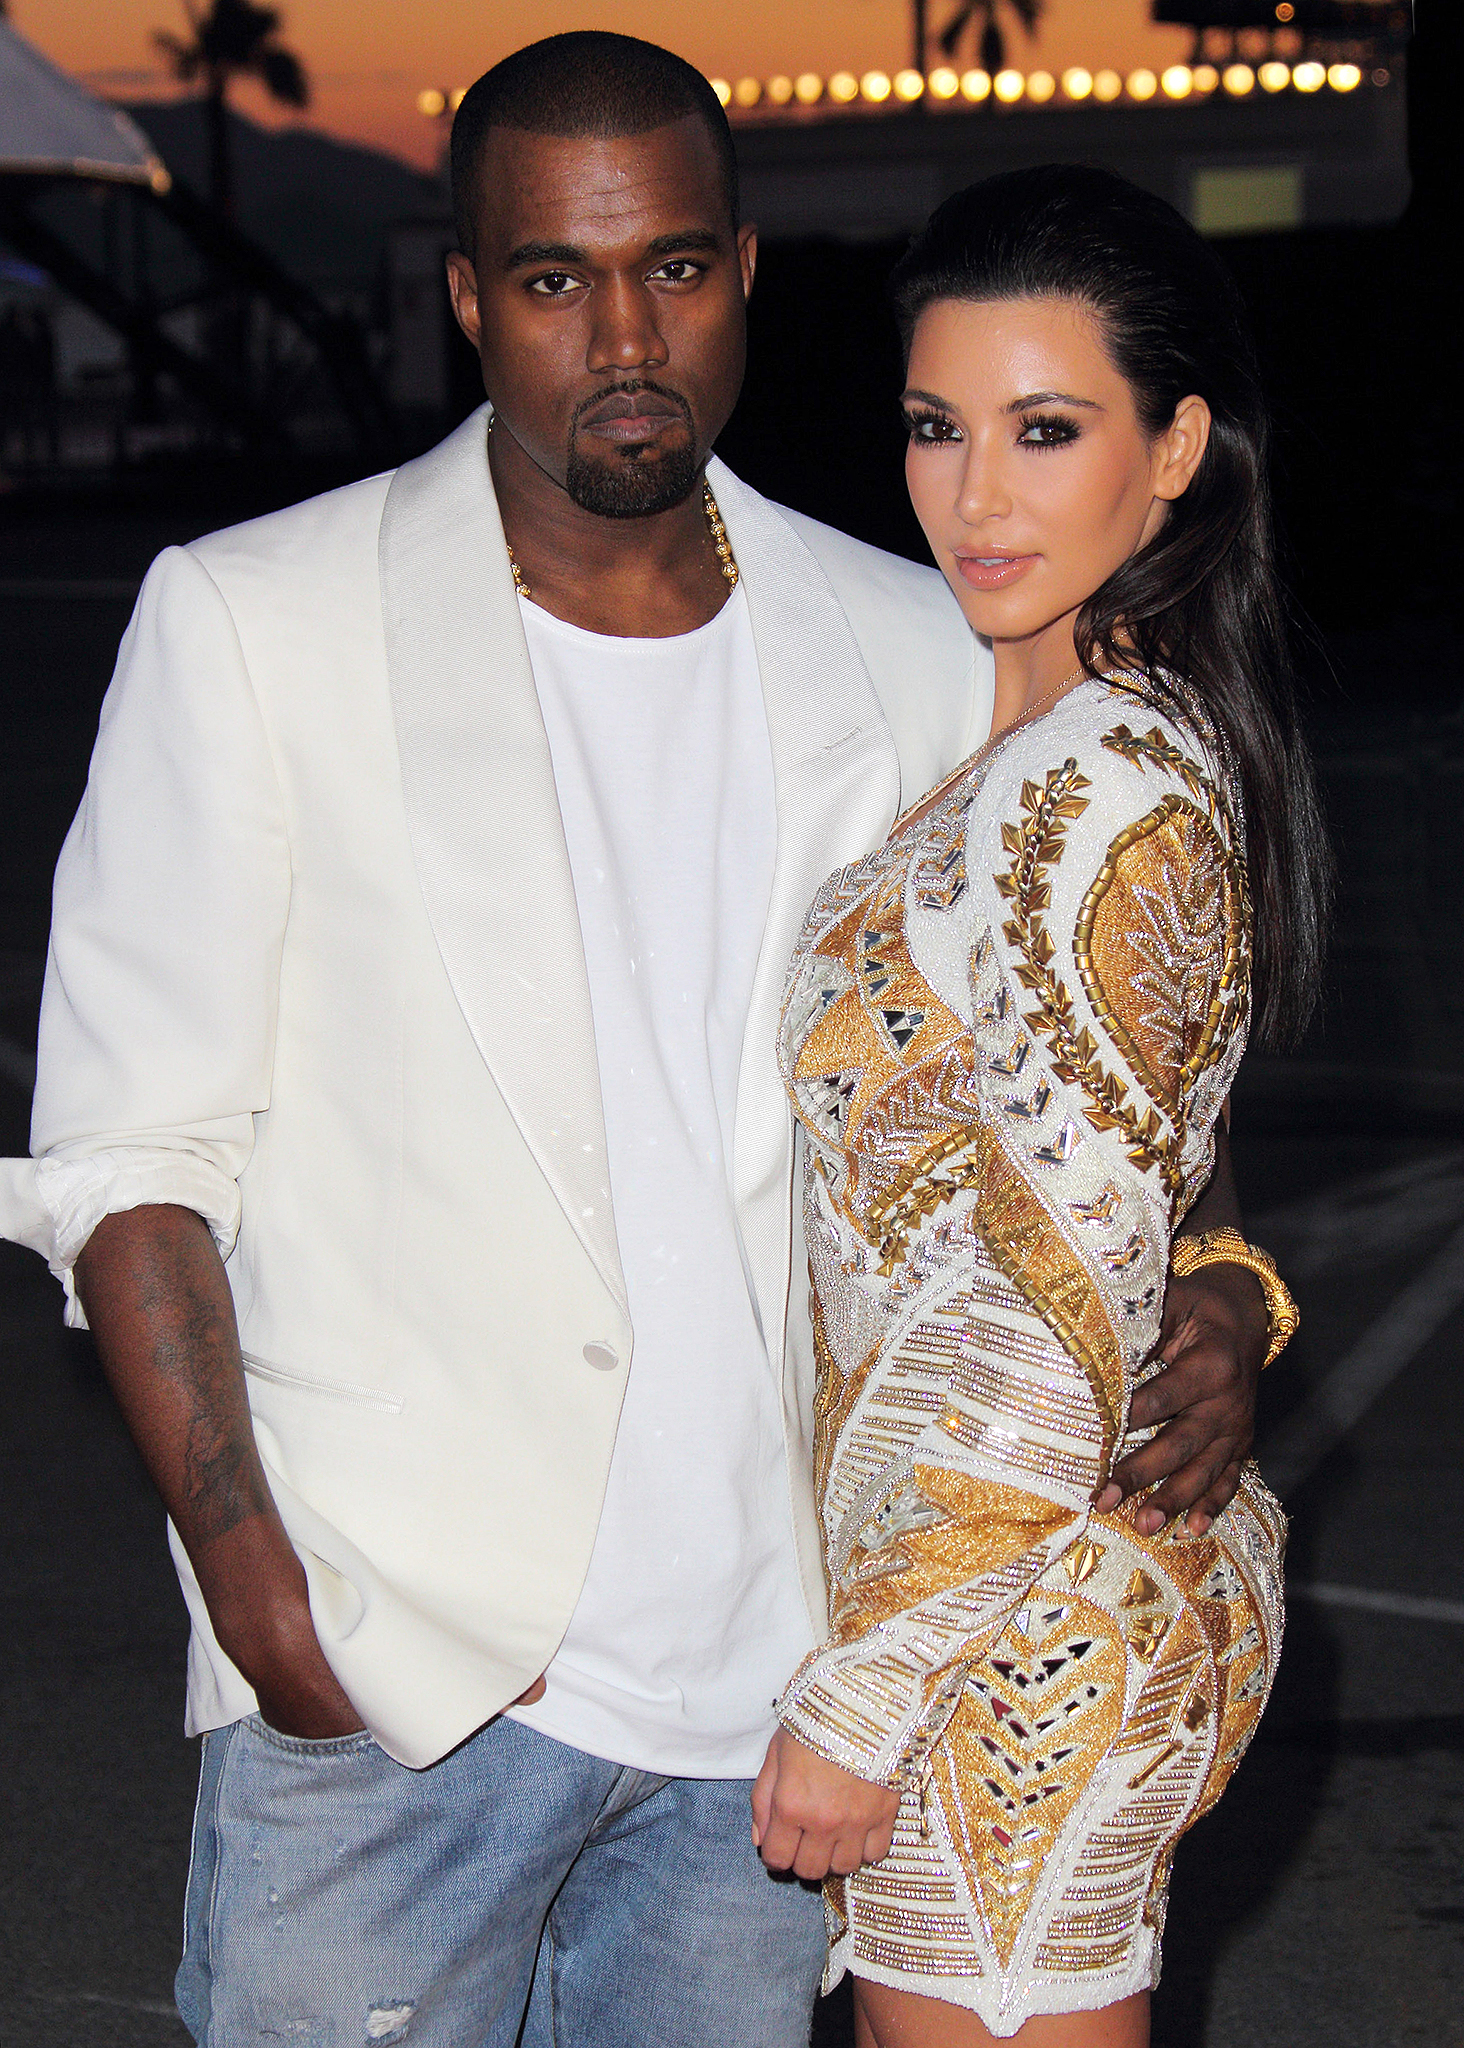 Kanye West and Kim Kardashian (Mike Marsland/WireImage)